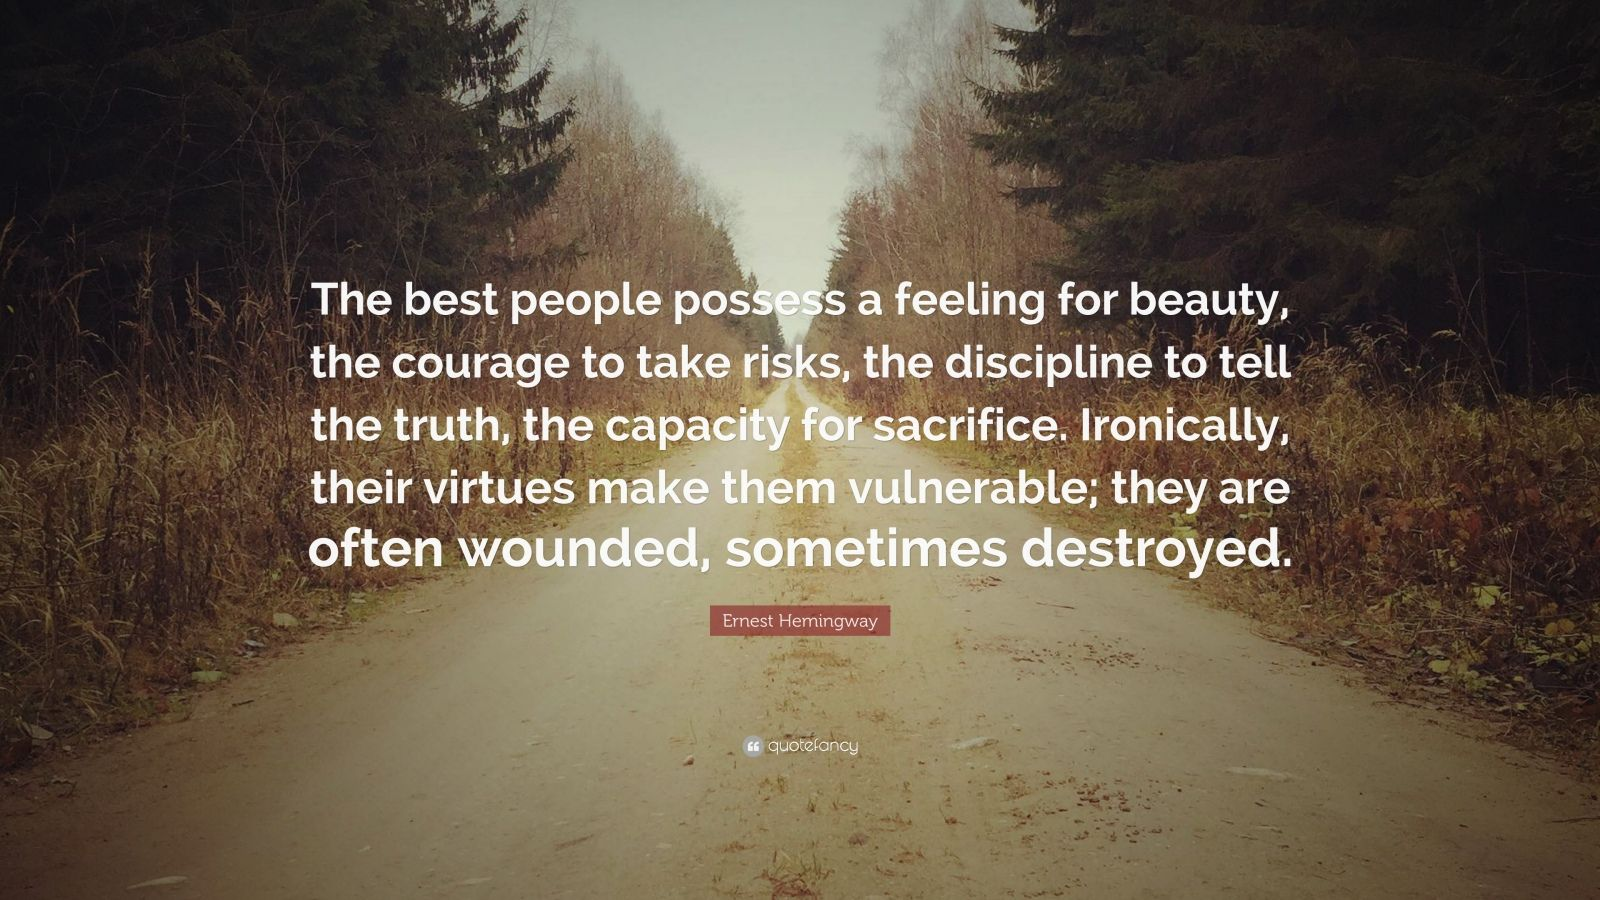 "Ernest Hemingway Quote: ""The best people possess a feeling for beauty, the courage to take risks, the discipline to tell the truth, the capacity for sacrifice. Ironically, their virtues make them vulnerable; they are often wounded, sometimes destroyed."""